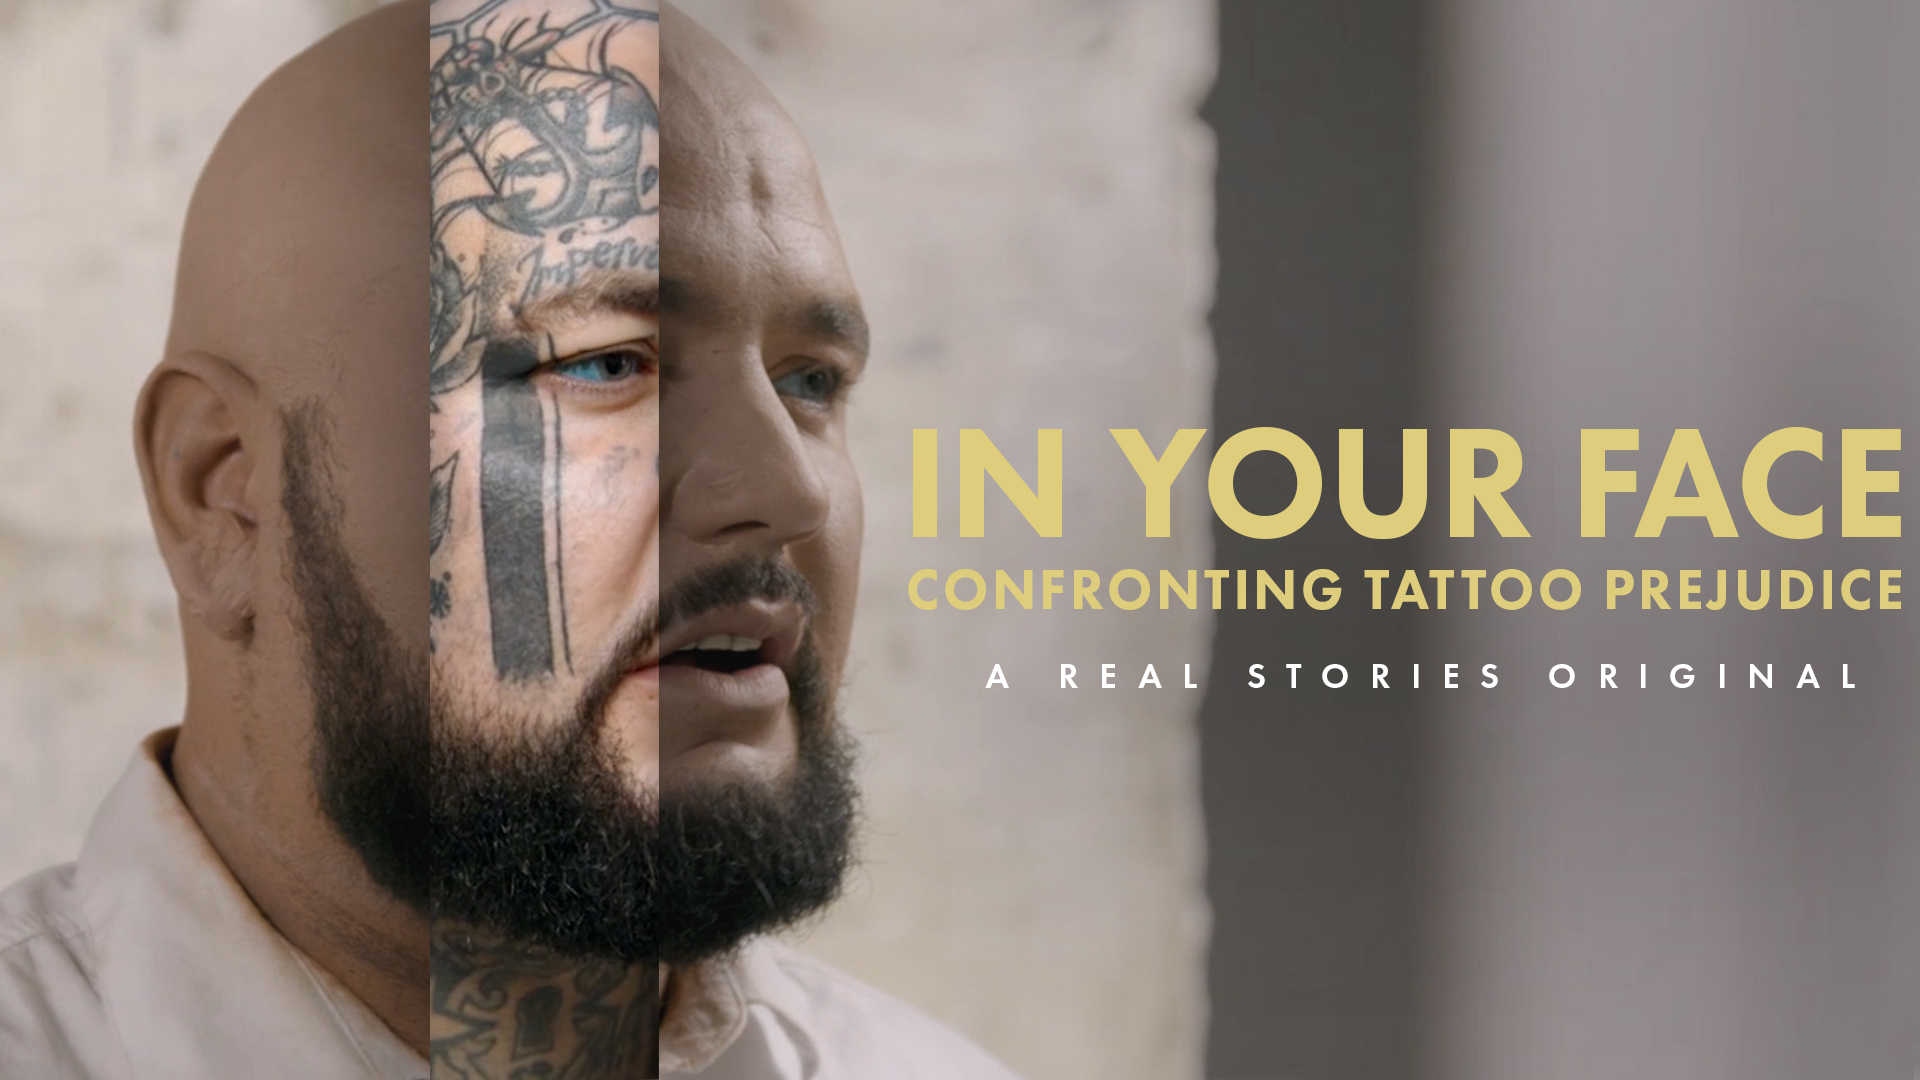 In Your Face Real Stories Original documentary confronting tattoo prejudice